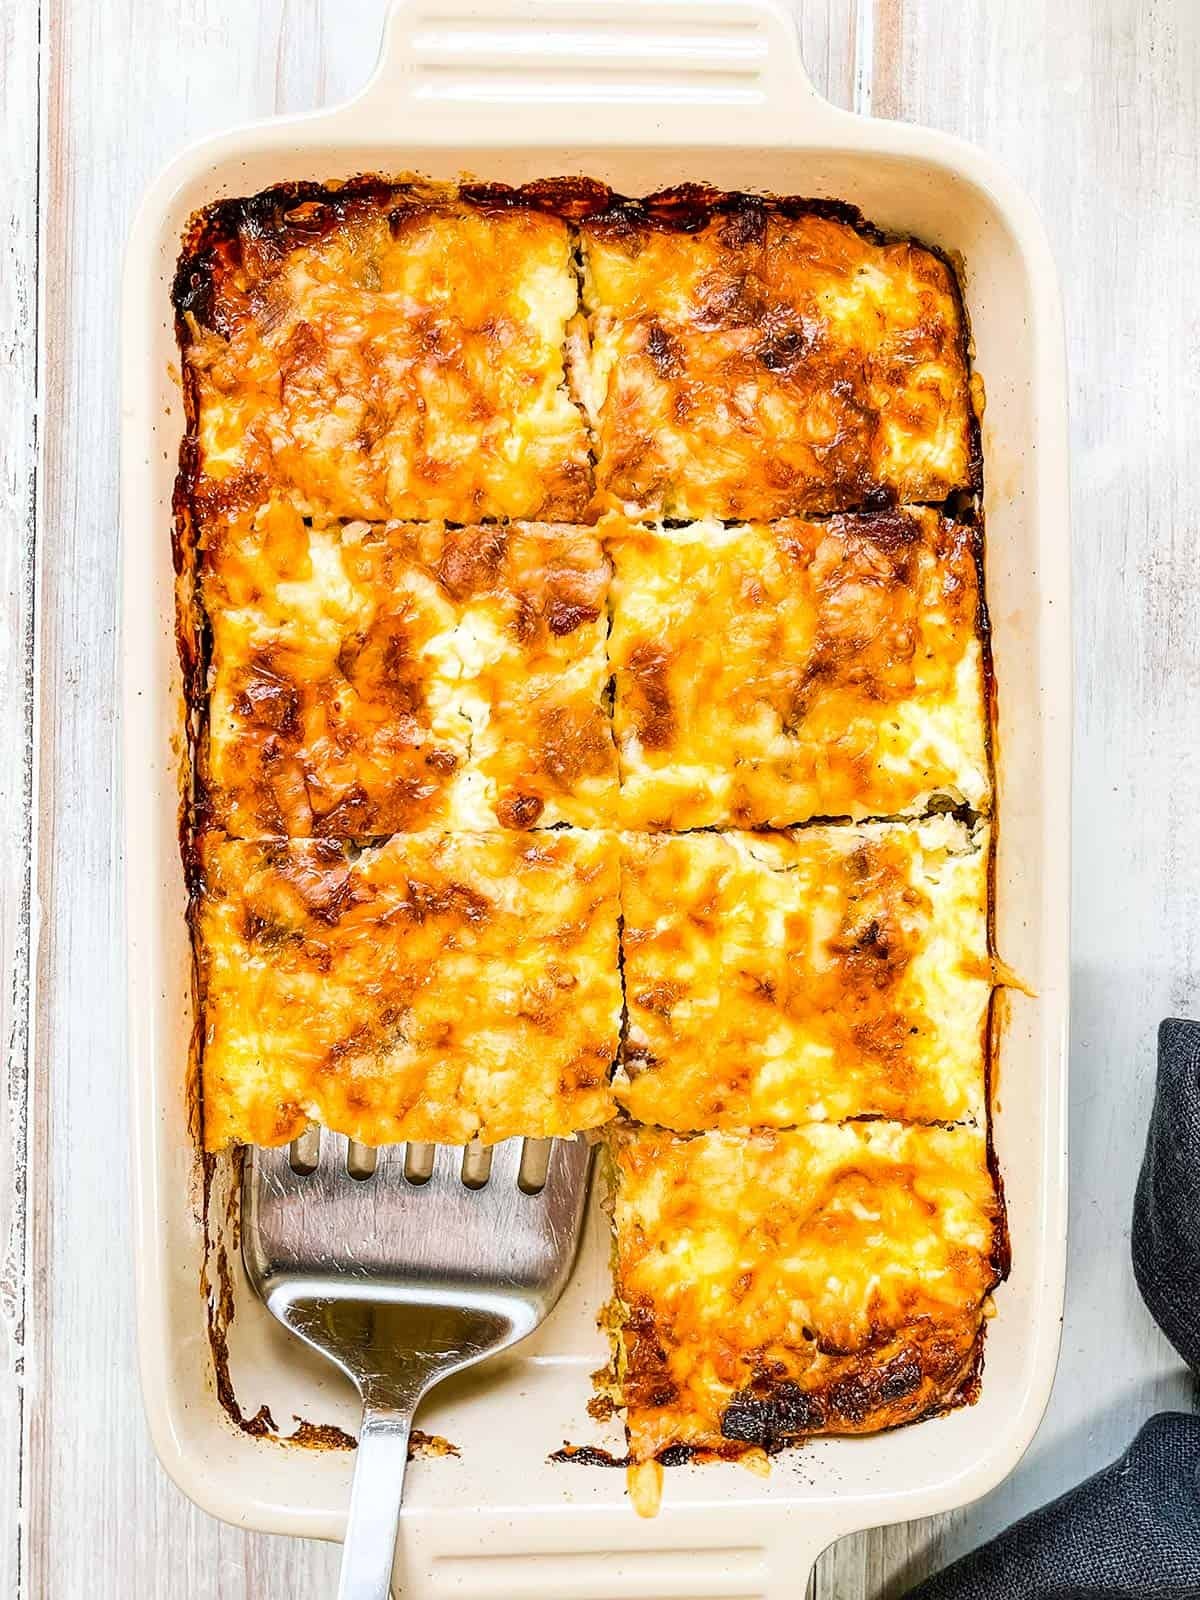 The baked casserole cut into 8 slices with one piece missing.